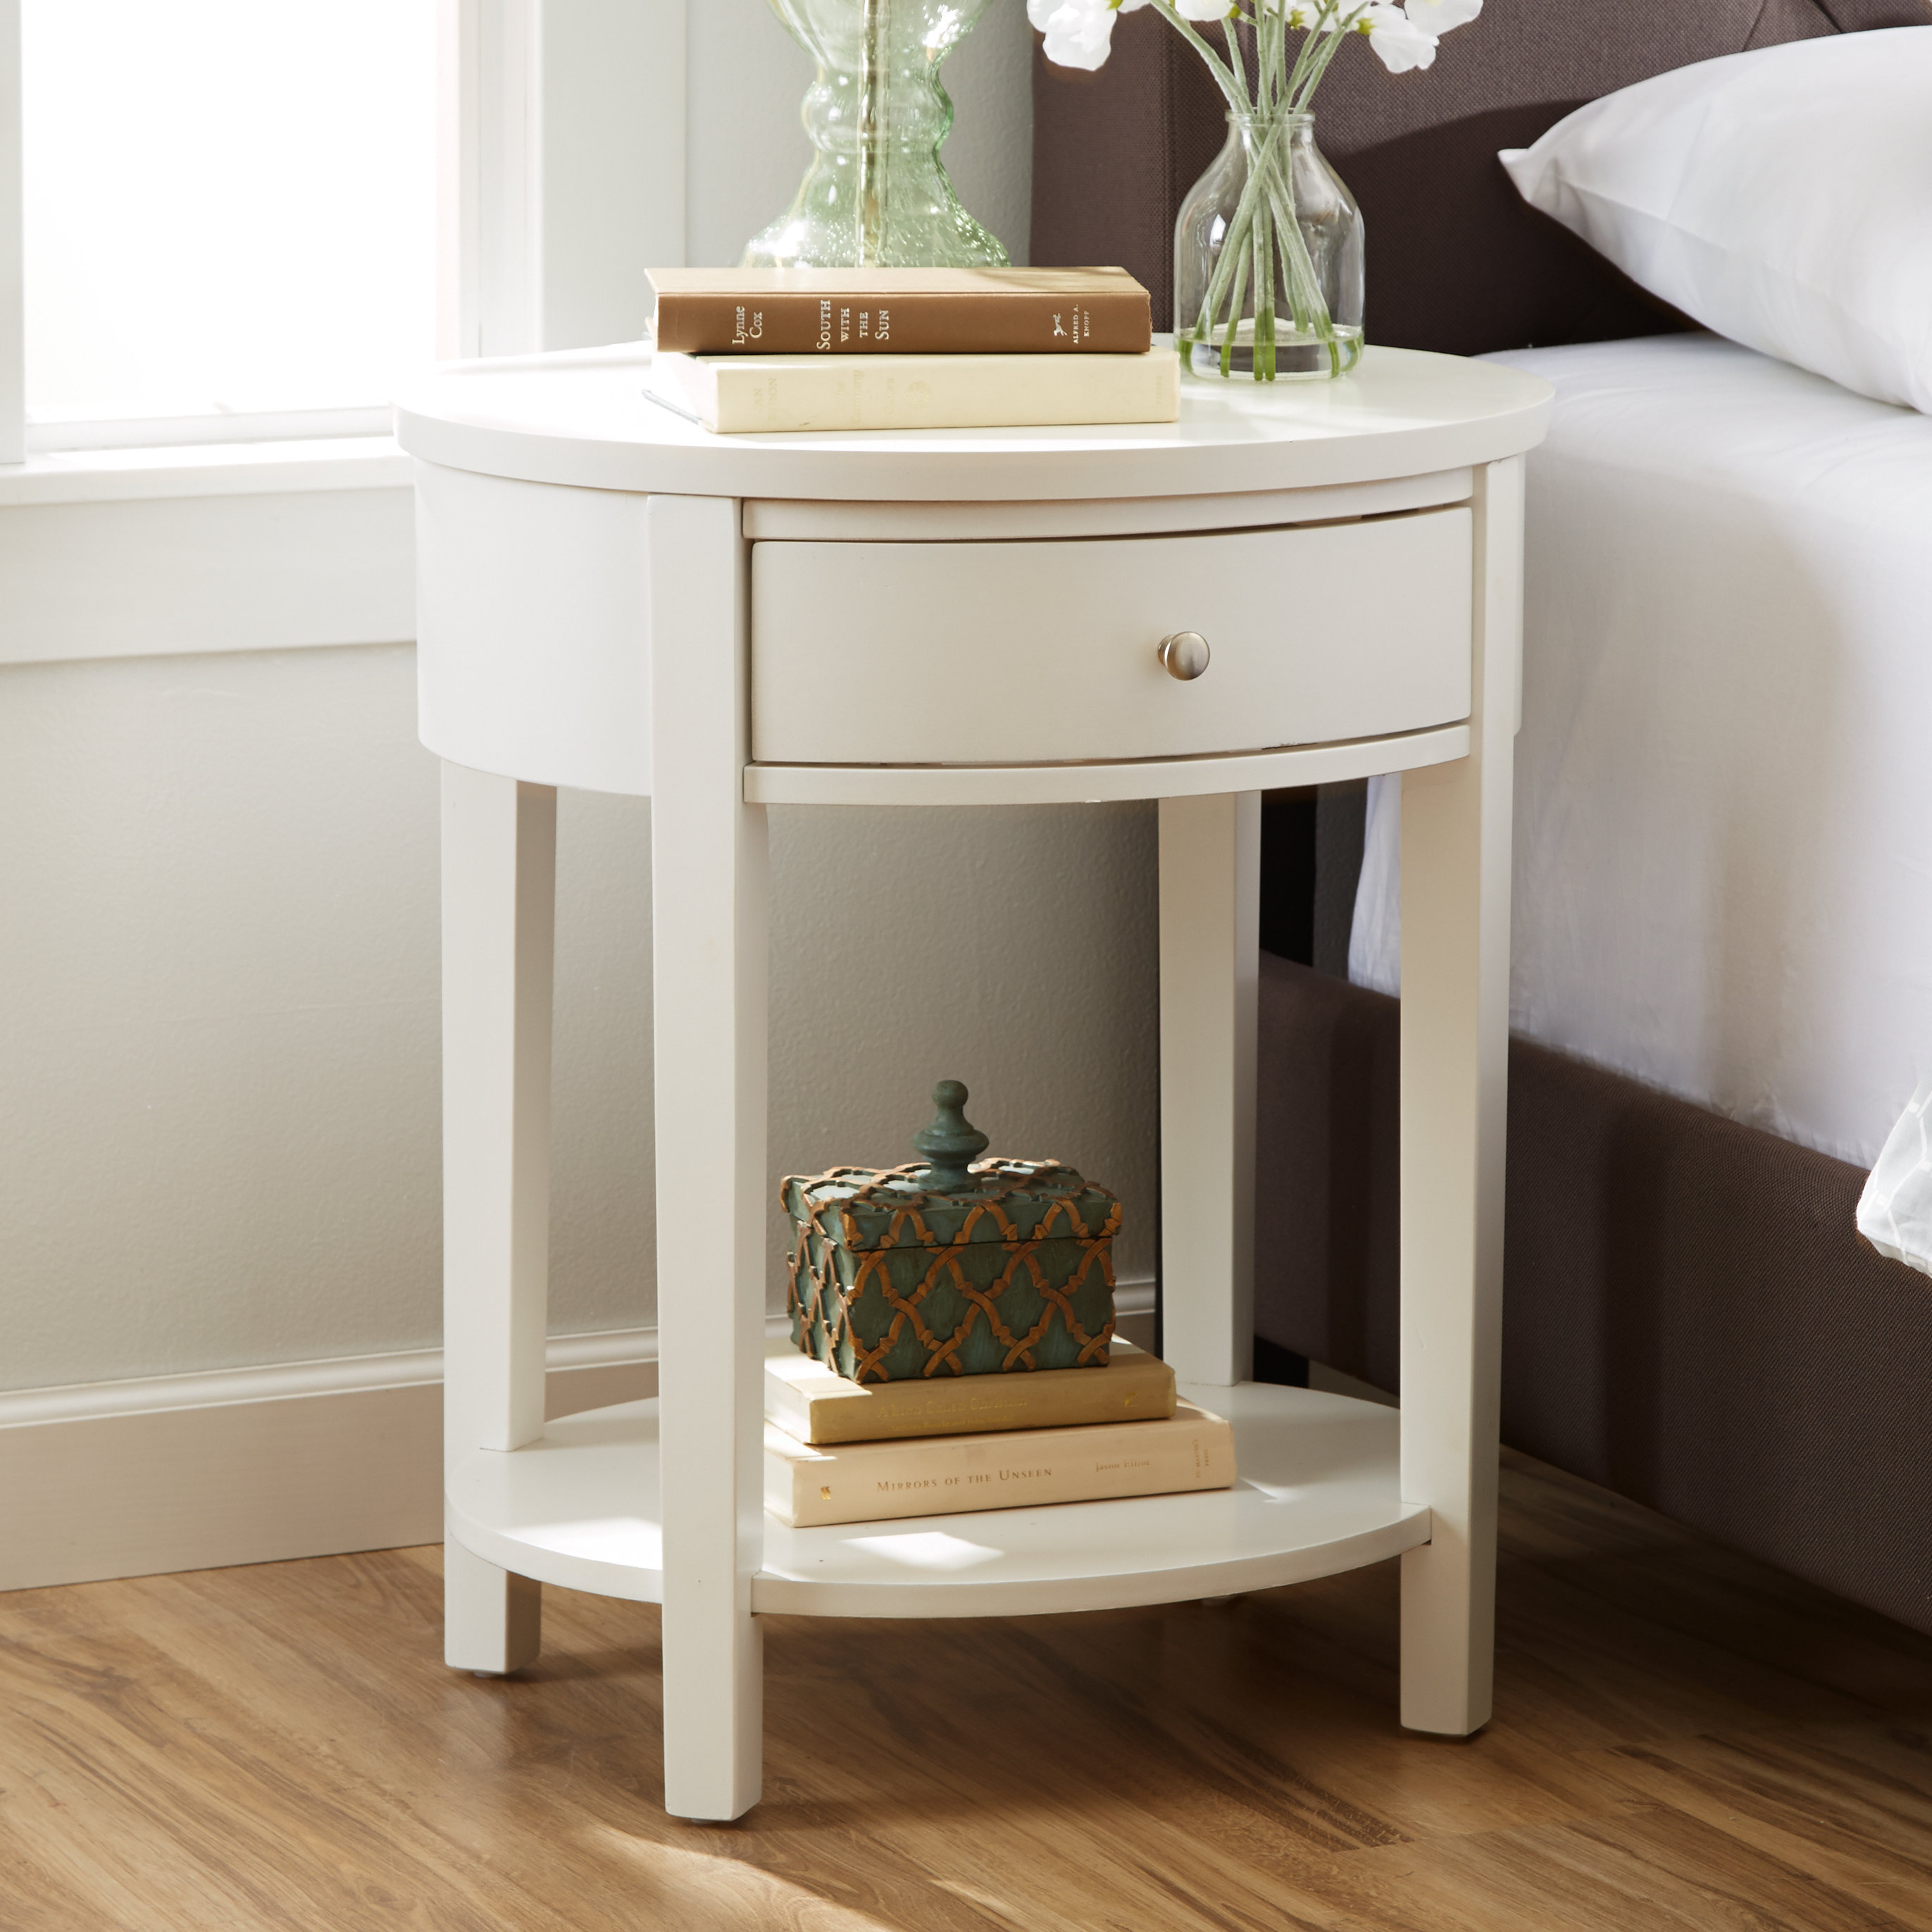 three posts canterbury end table with storage reviews room essentials accent pier one mirrored nightstand target gold desk lamp mid century kidney coffee mini light wrought iron